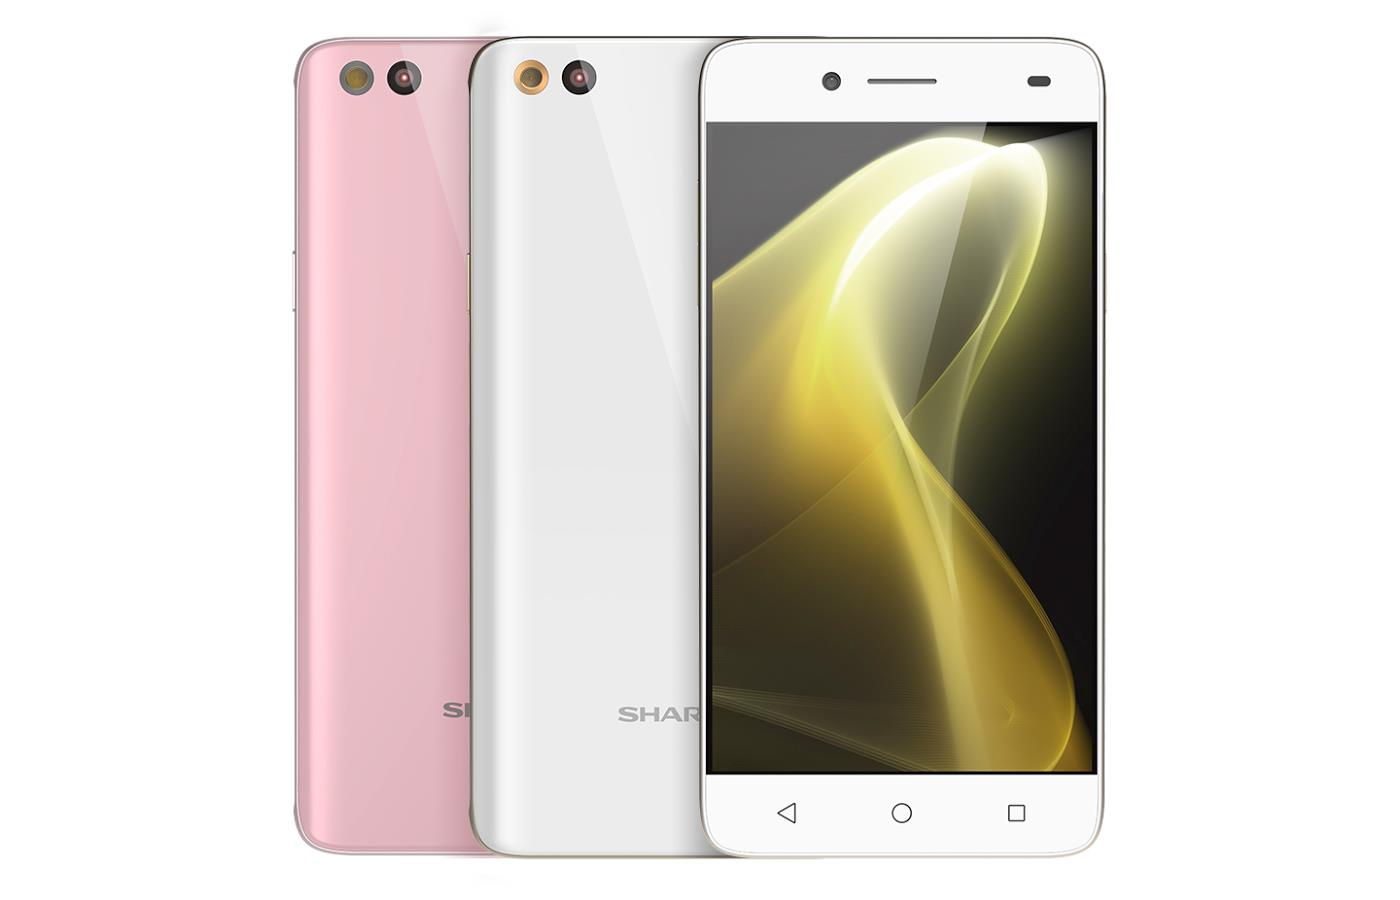 SHARP Aquos M1 (3GB RAM,64GB ROM) ORIGINAL SET - Latest by Sharp